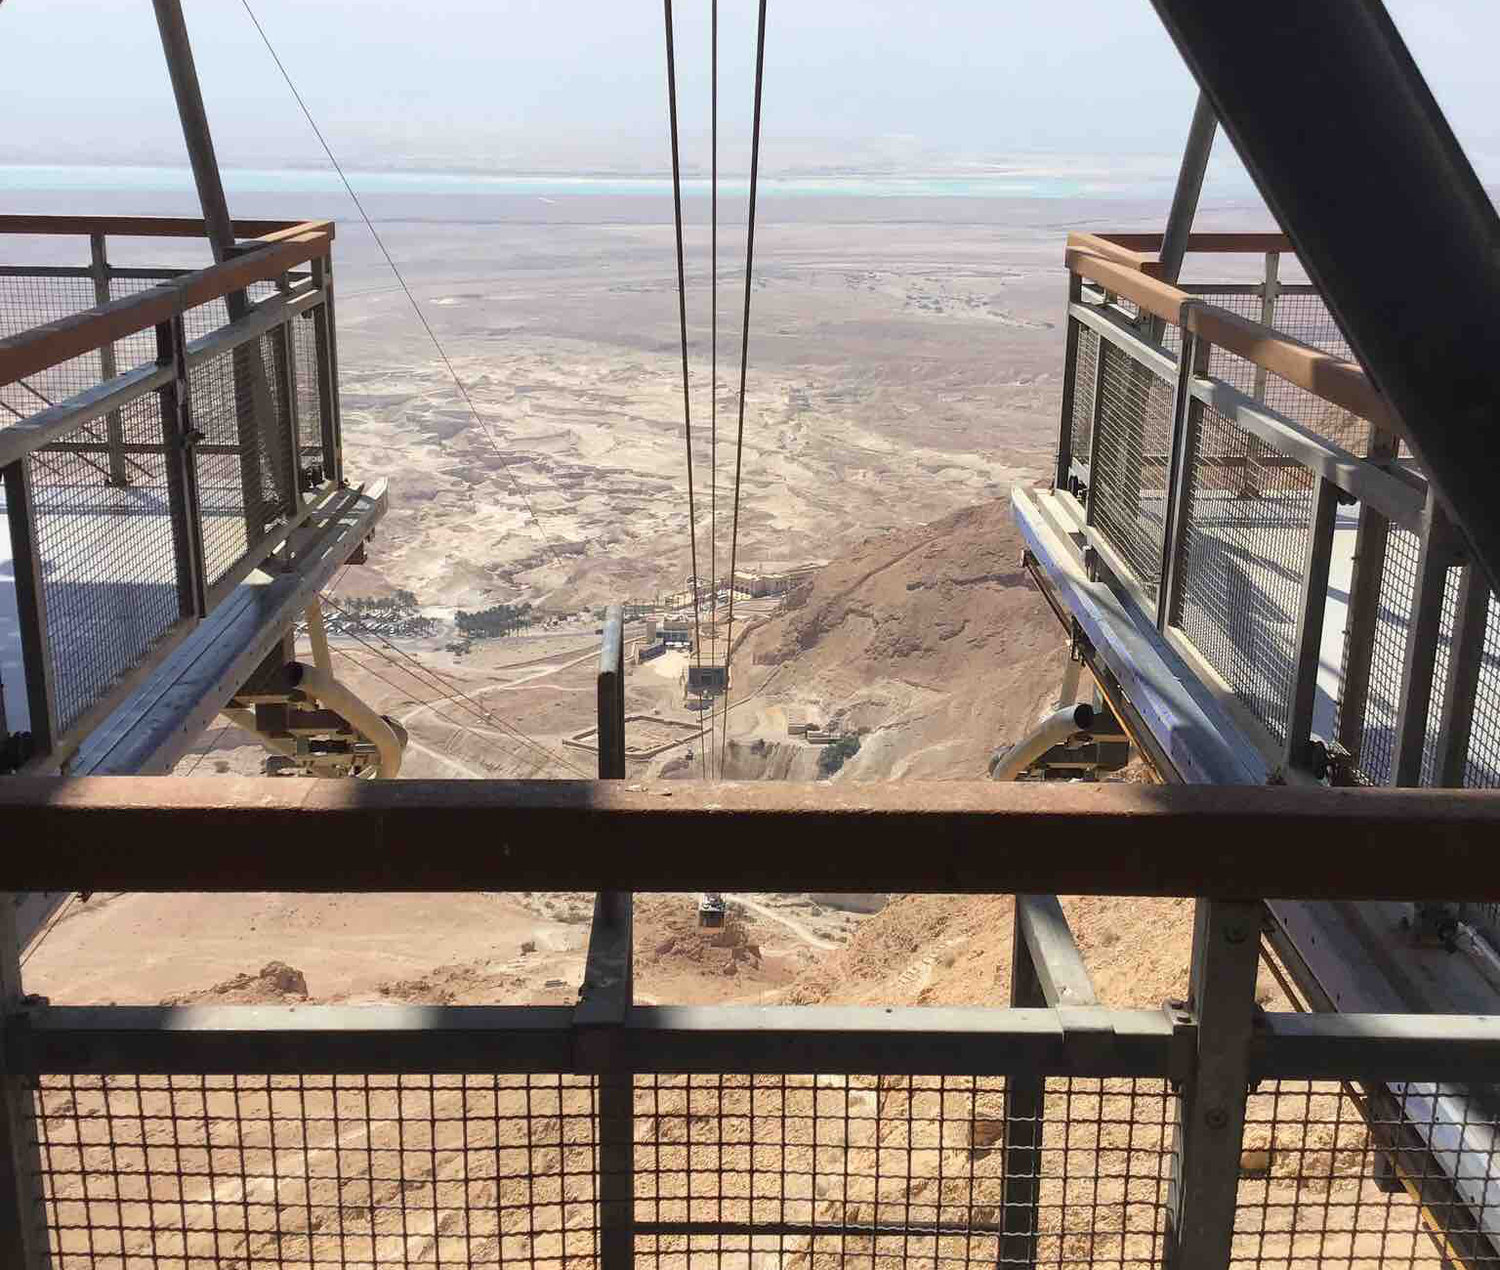 Cable car take people up and down to Masada.